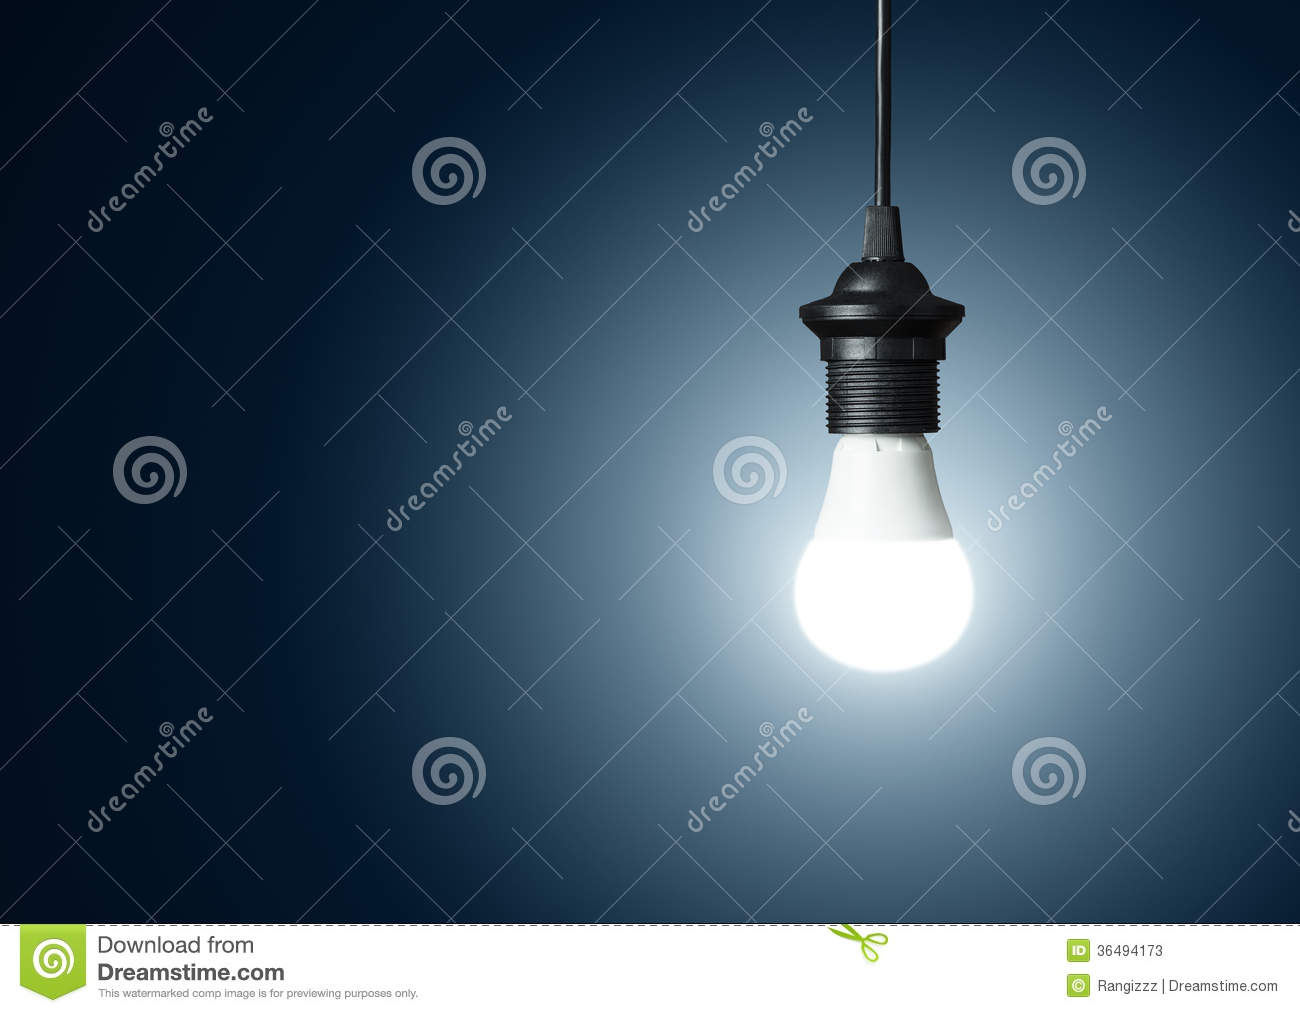 Modern Lighting Concept Modern Light Bulb Stock Image Image Of Bright Bulb